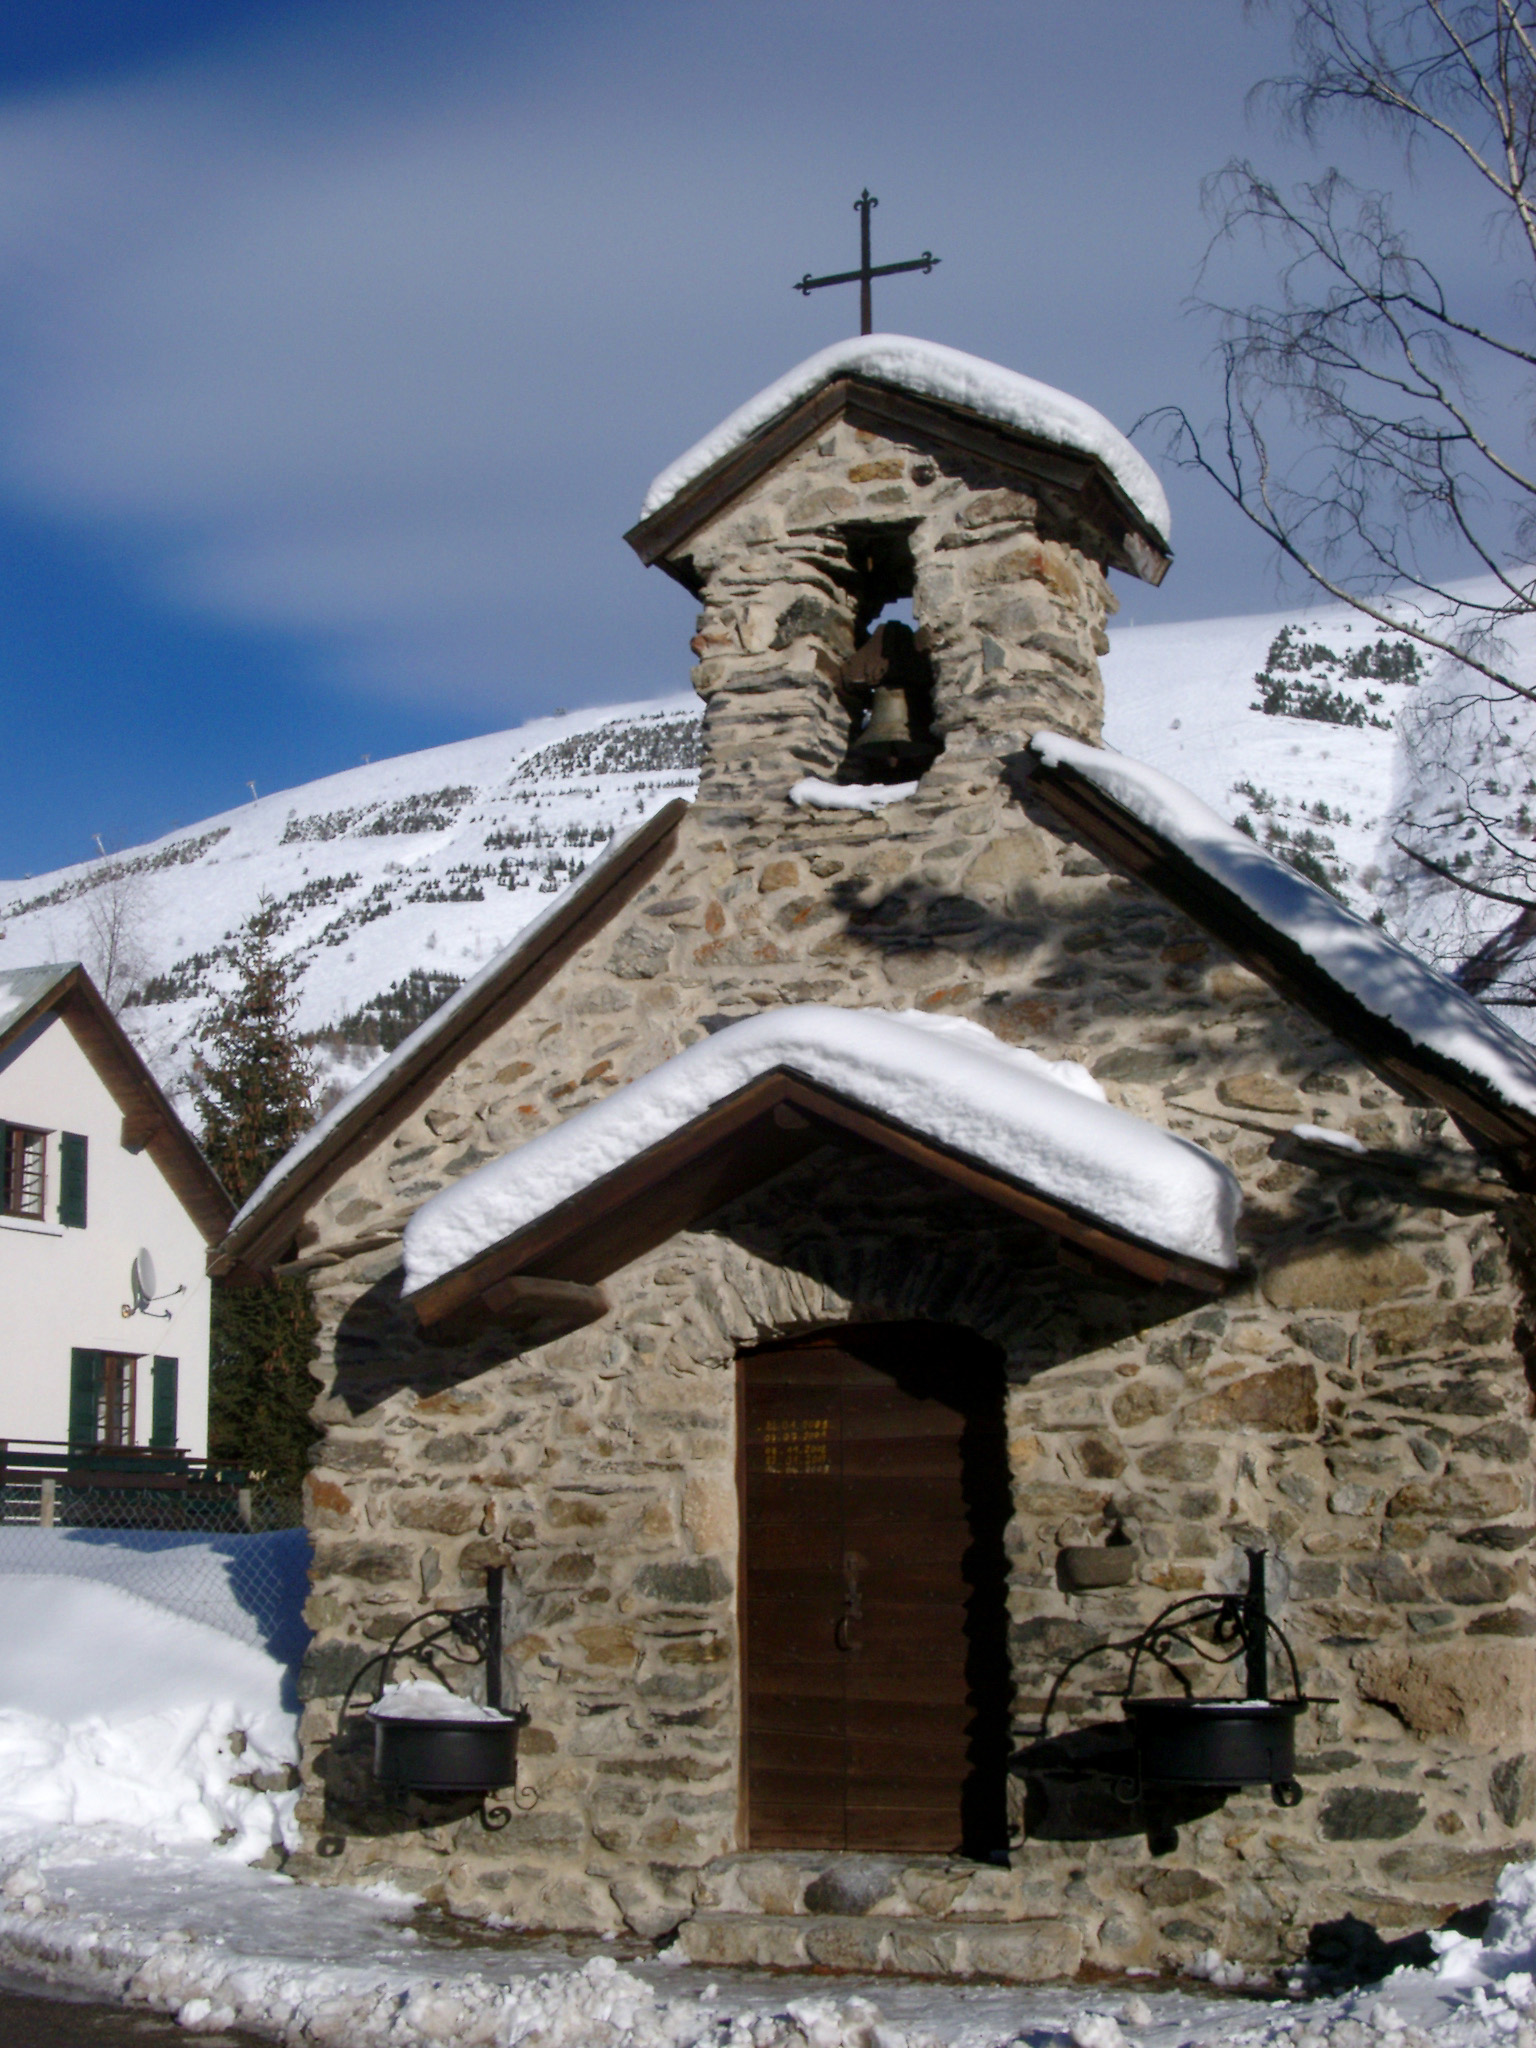 Snows on a Small Historic Alpine Christian Church During Winter Season. Captured with Light Blue Gray Sky Background.